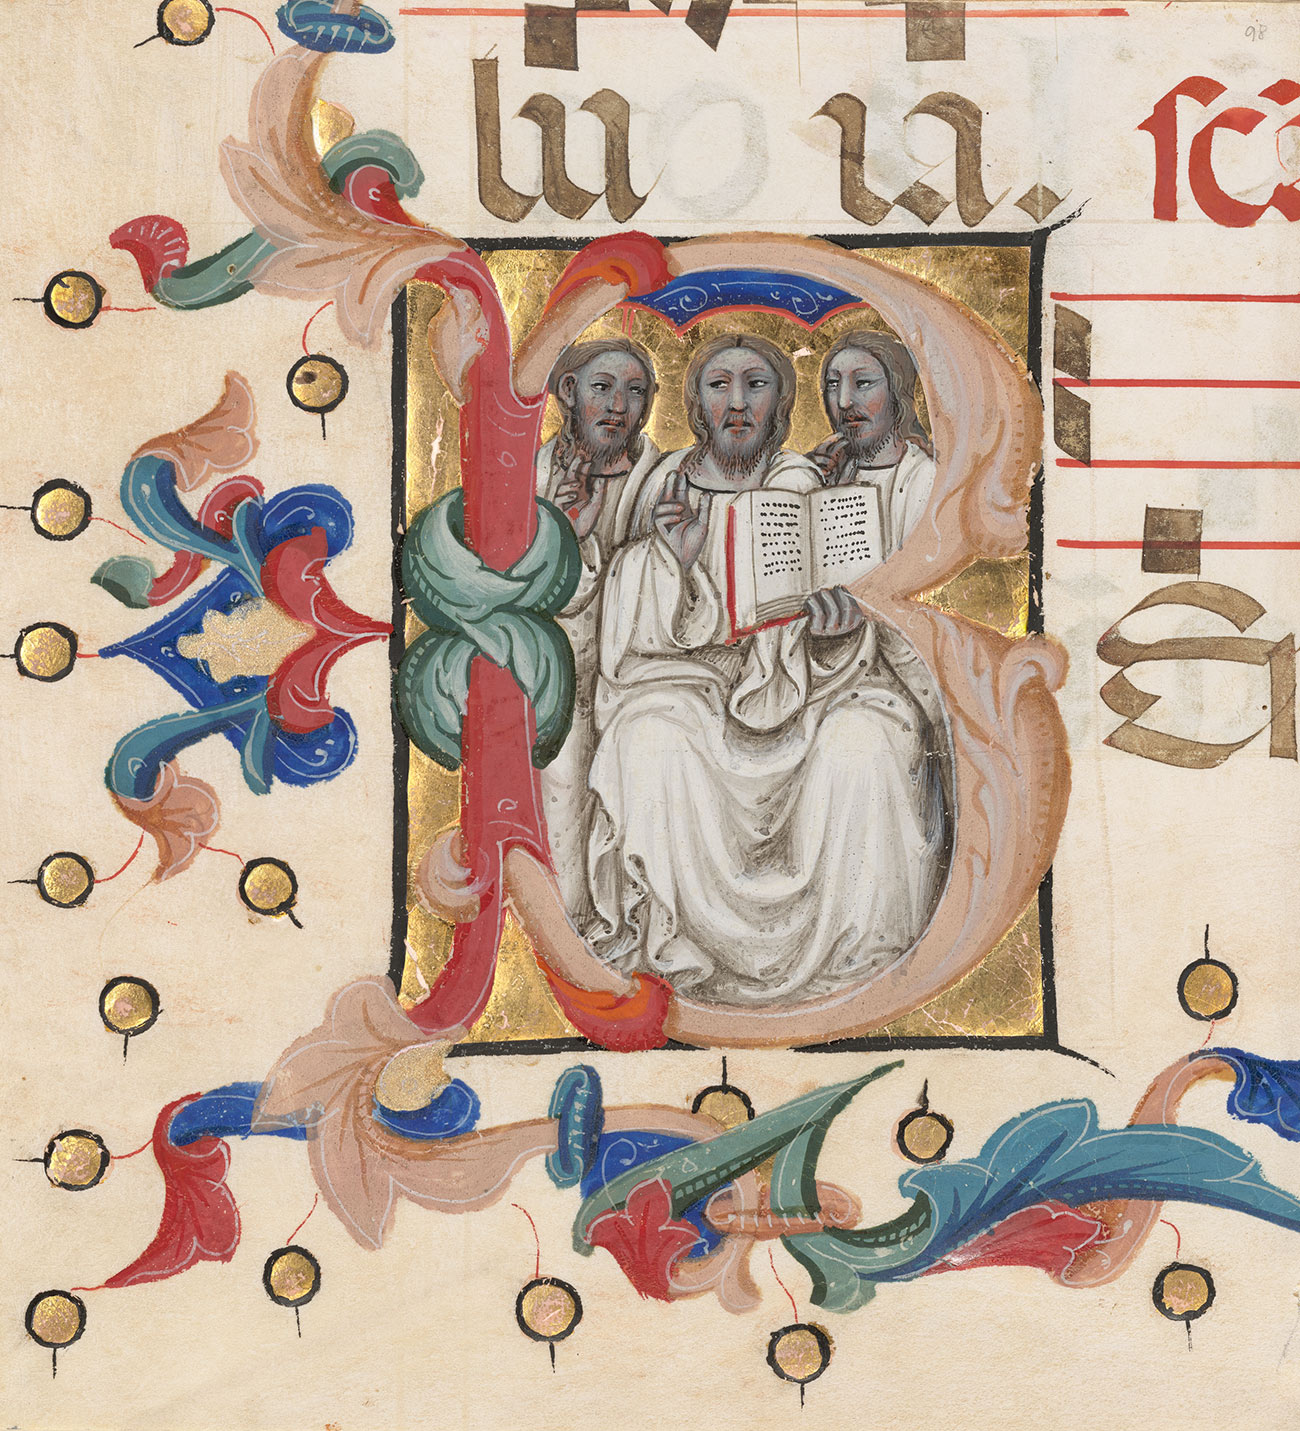 Three illustrated figures inside the initial B. The figure in the center holds an open book.